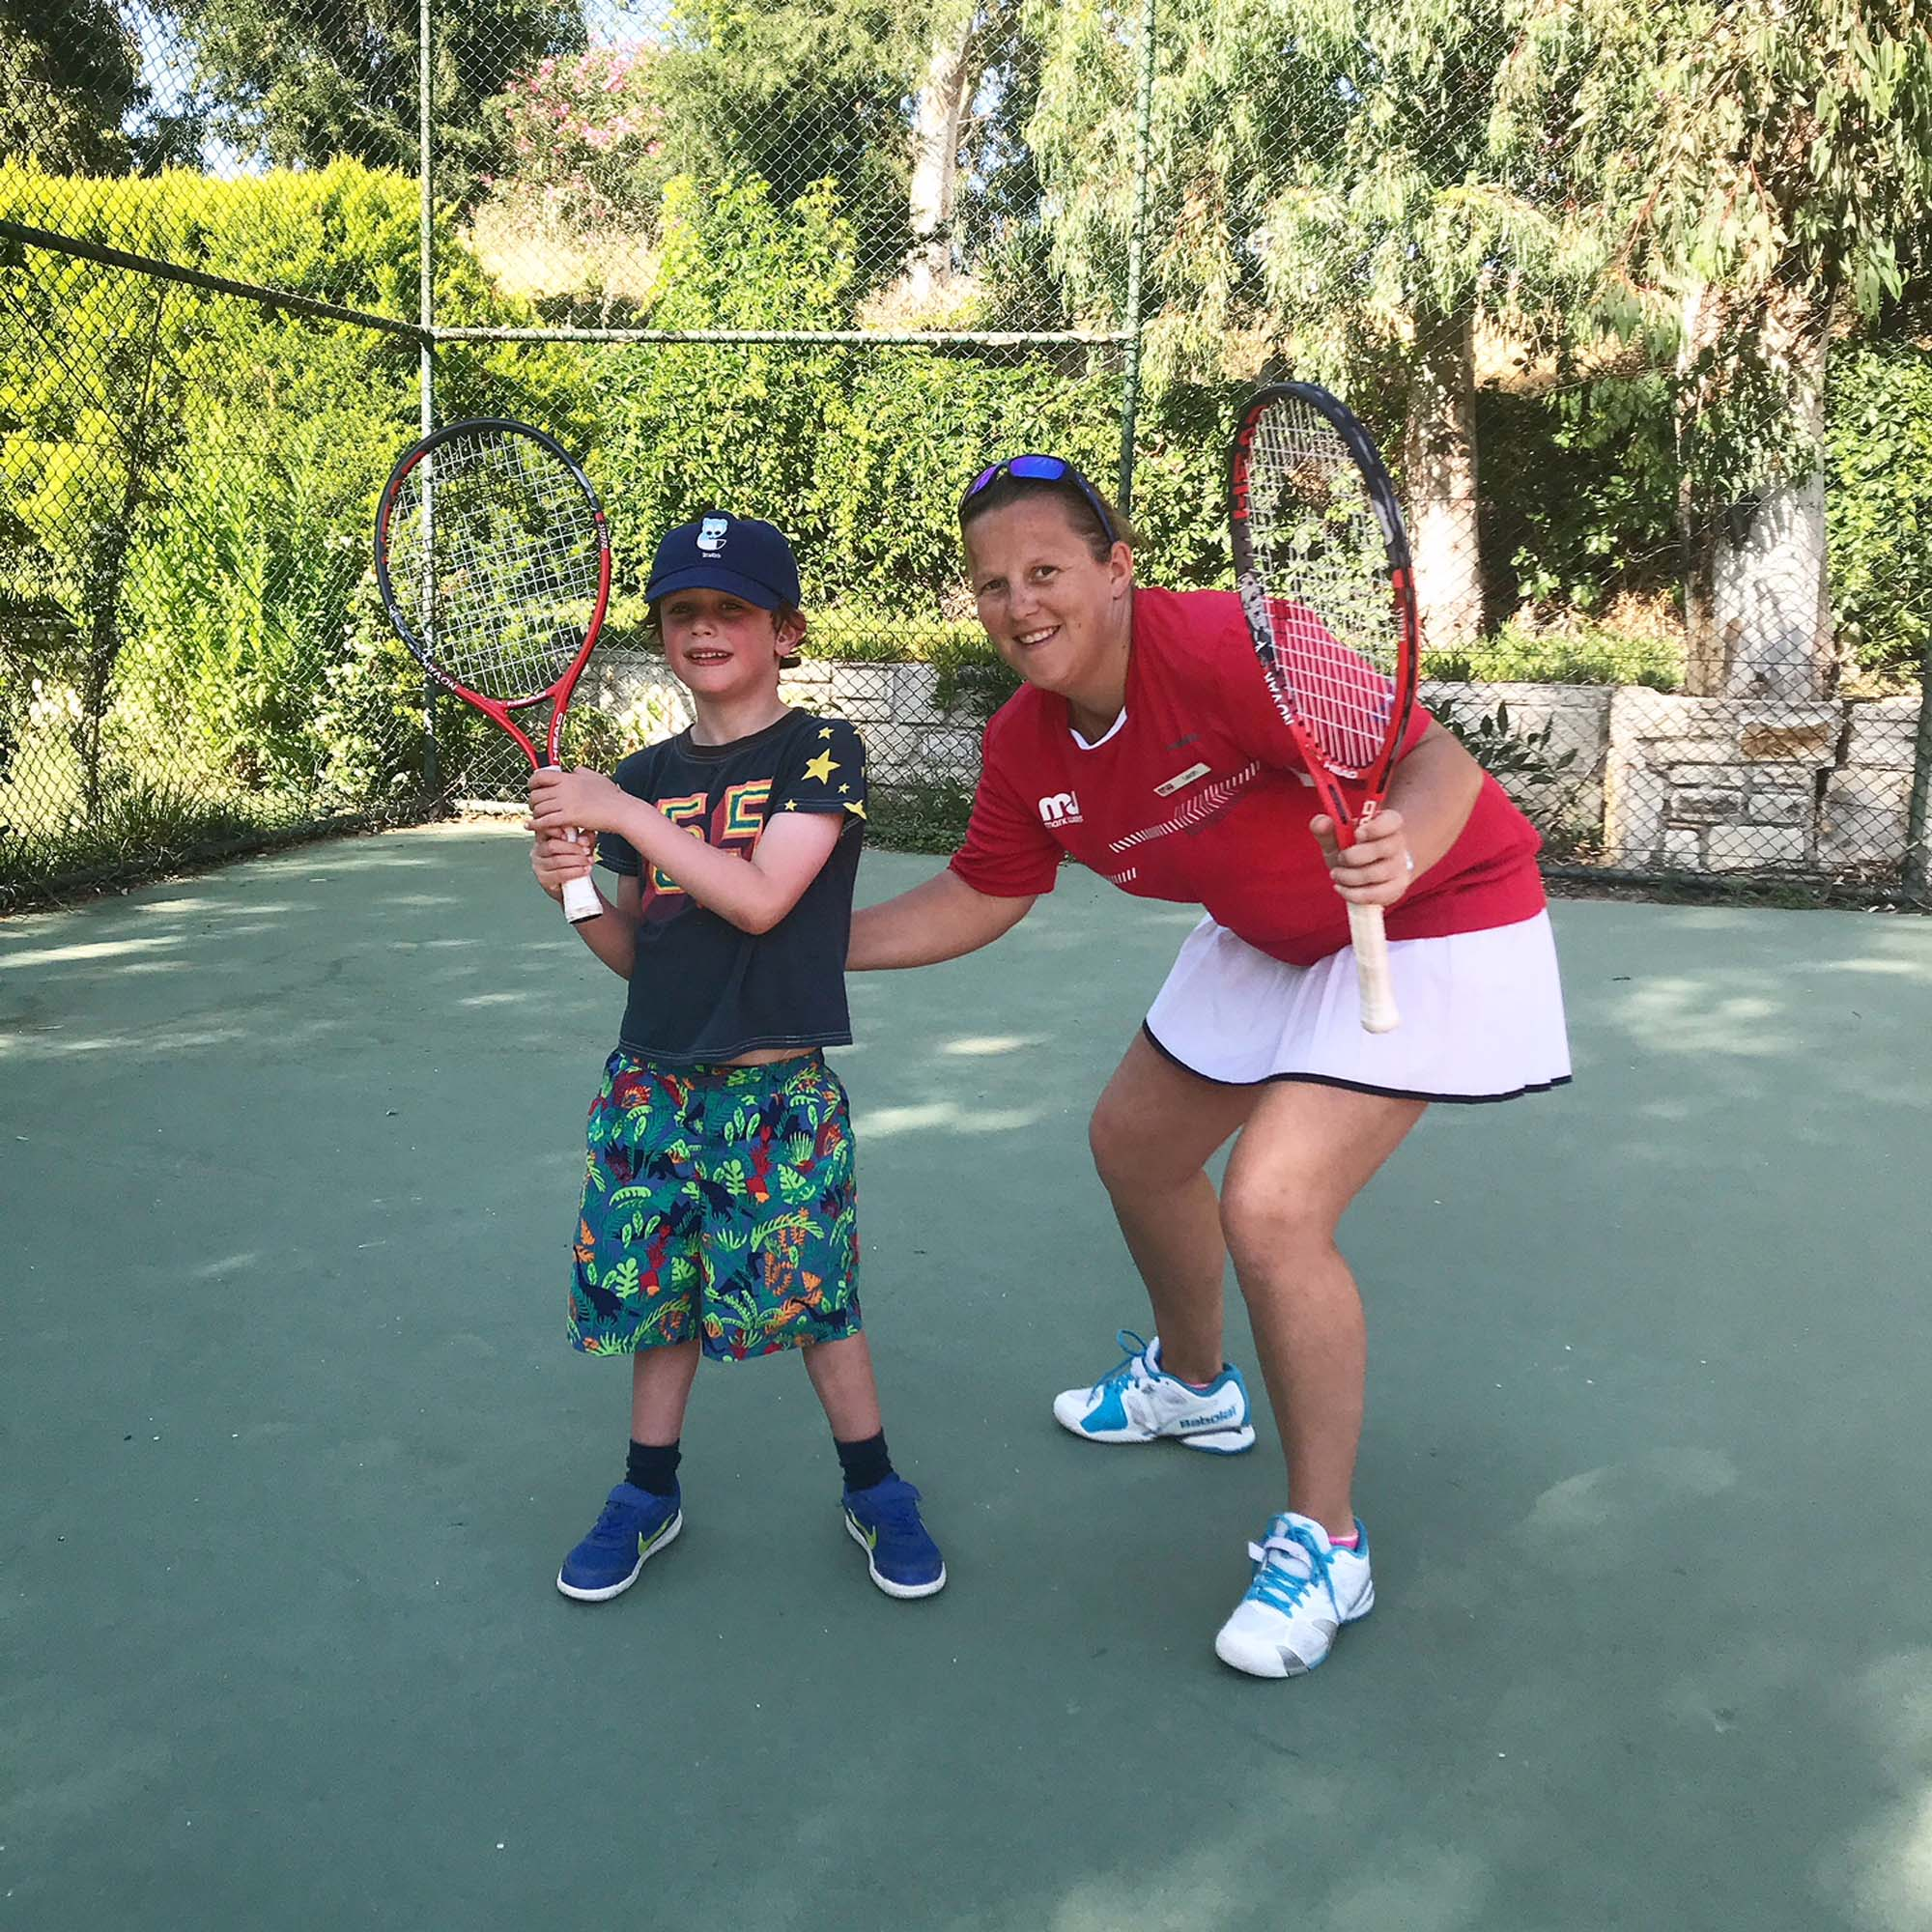 Private tennis lesson with lovely Coach Leah